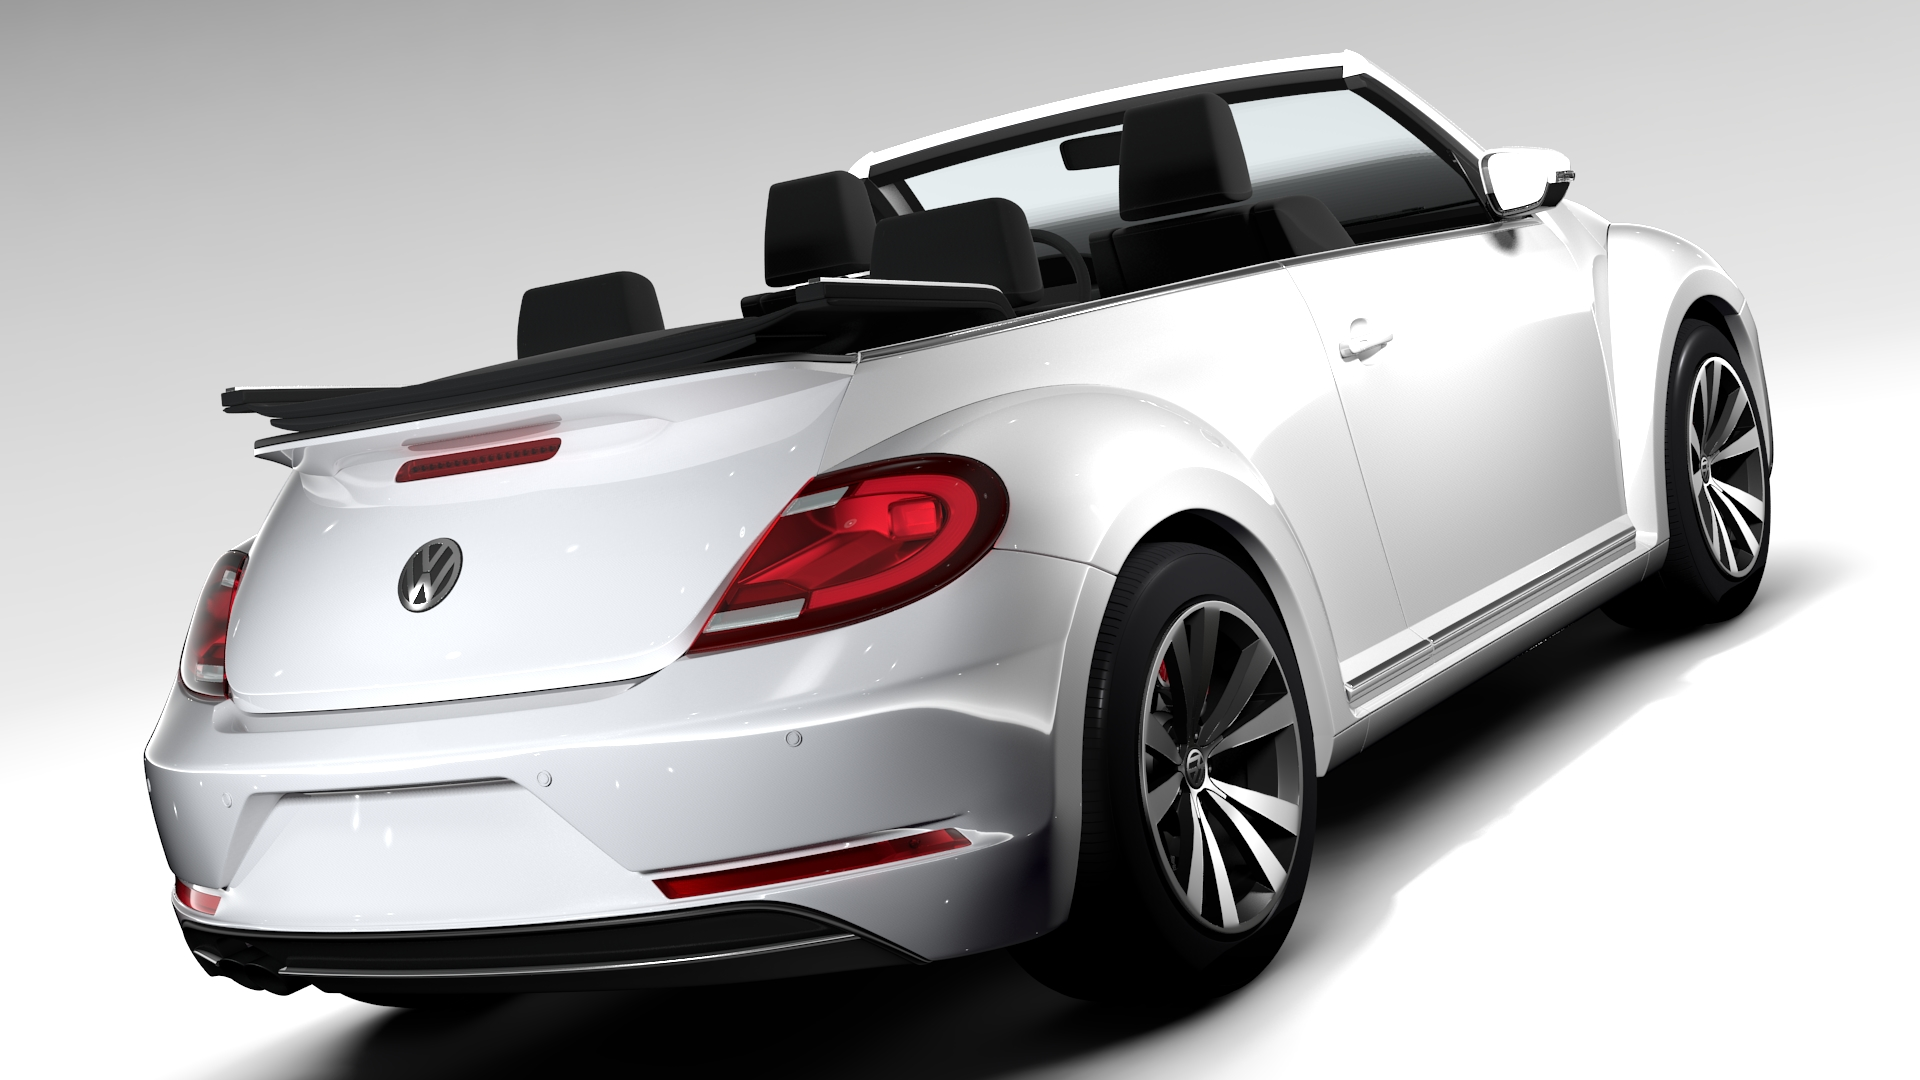 vw beetle cabriolet 2017 3d model. Black Bedroom Furniture Sets. Home Design Ideas